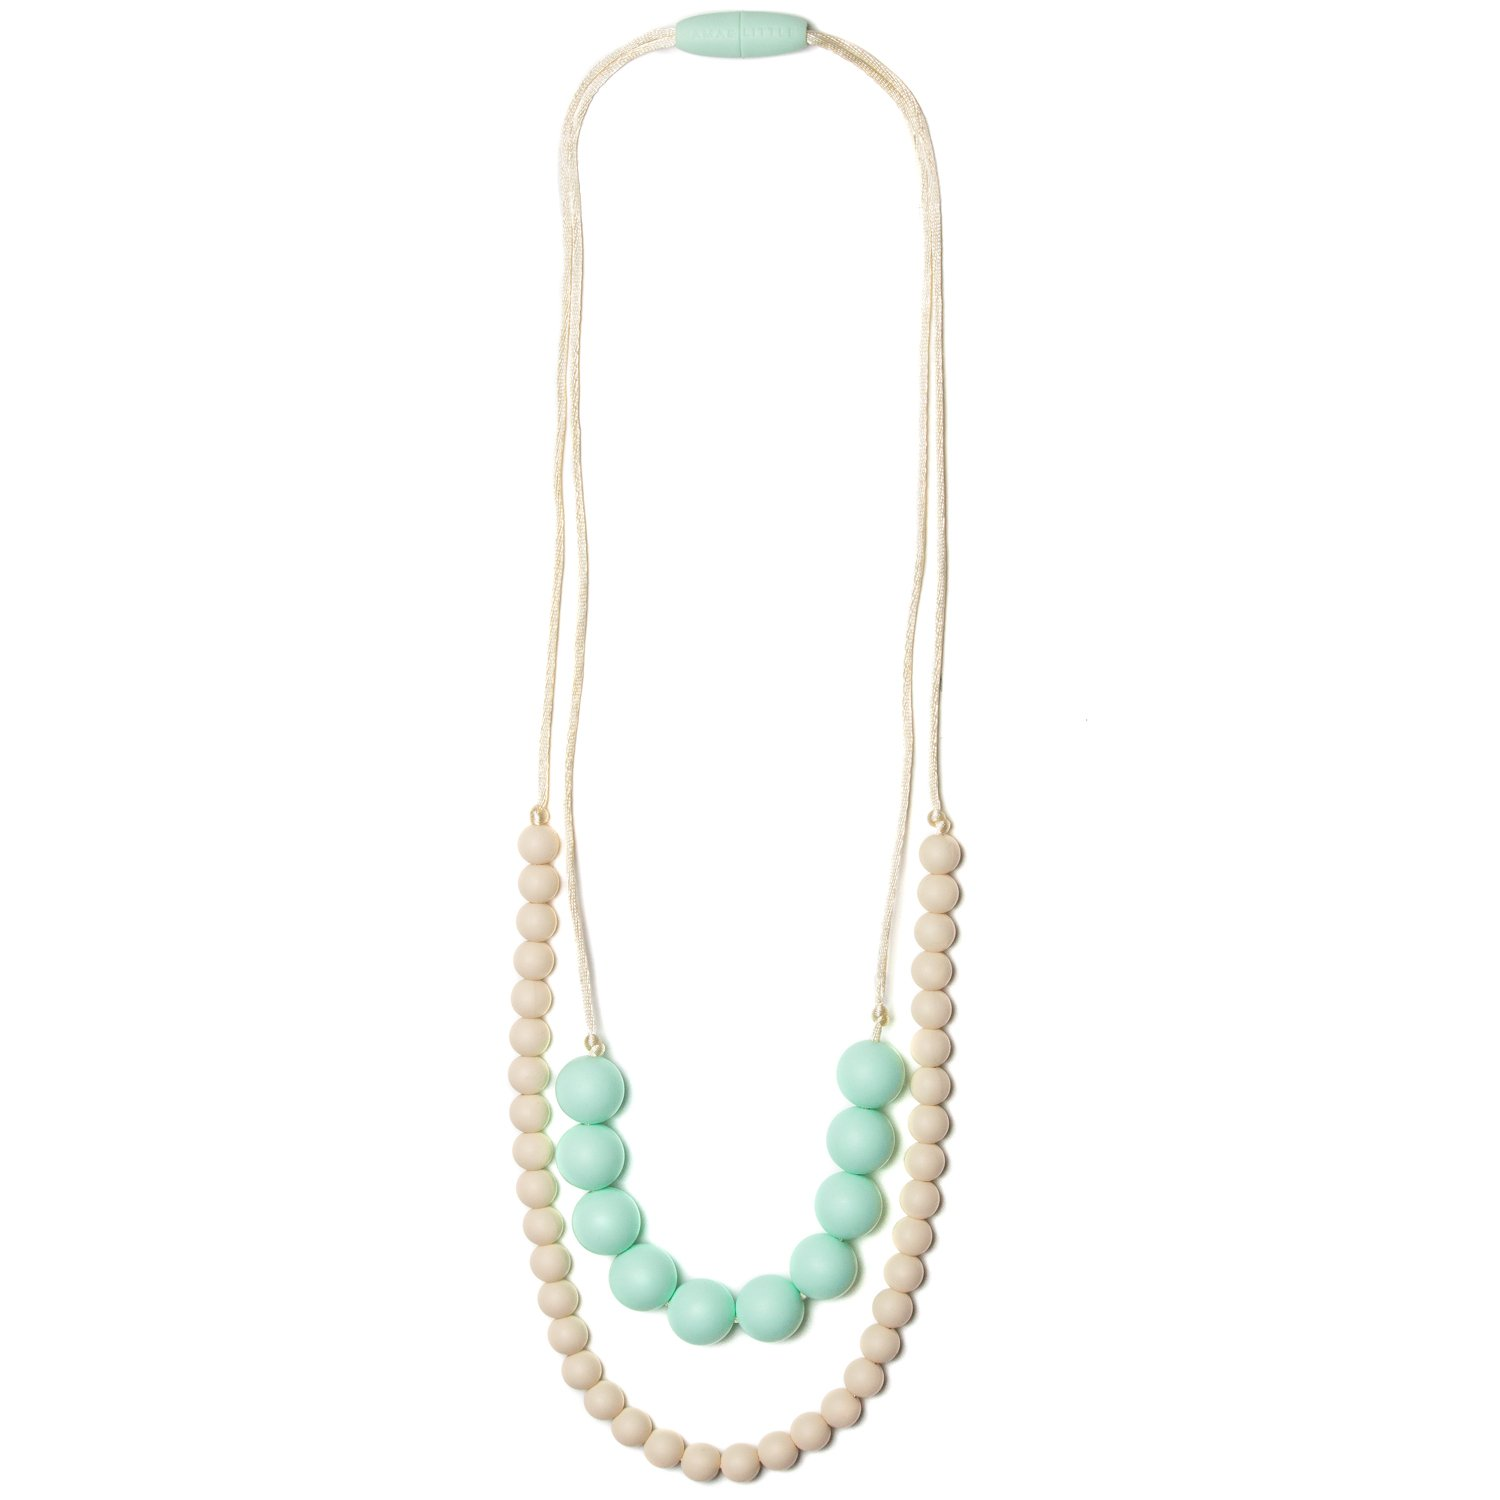 Mama & Little - Deila Silicone Teething Necklace - Bubblegum DEI02